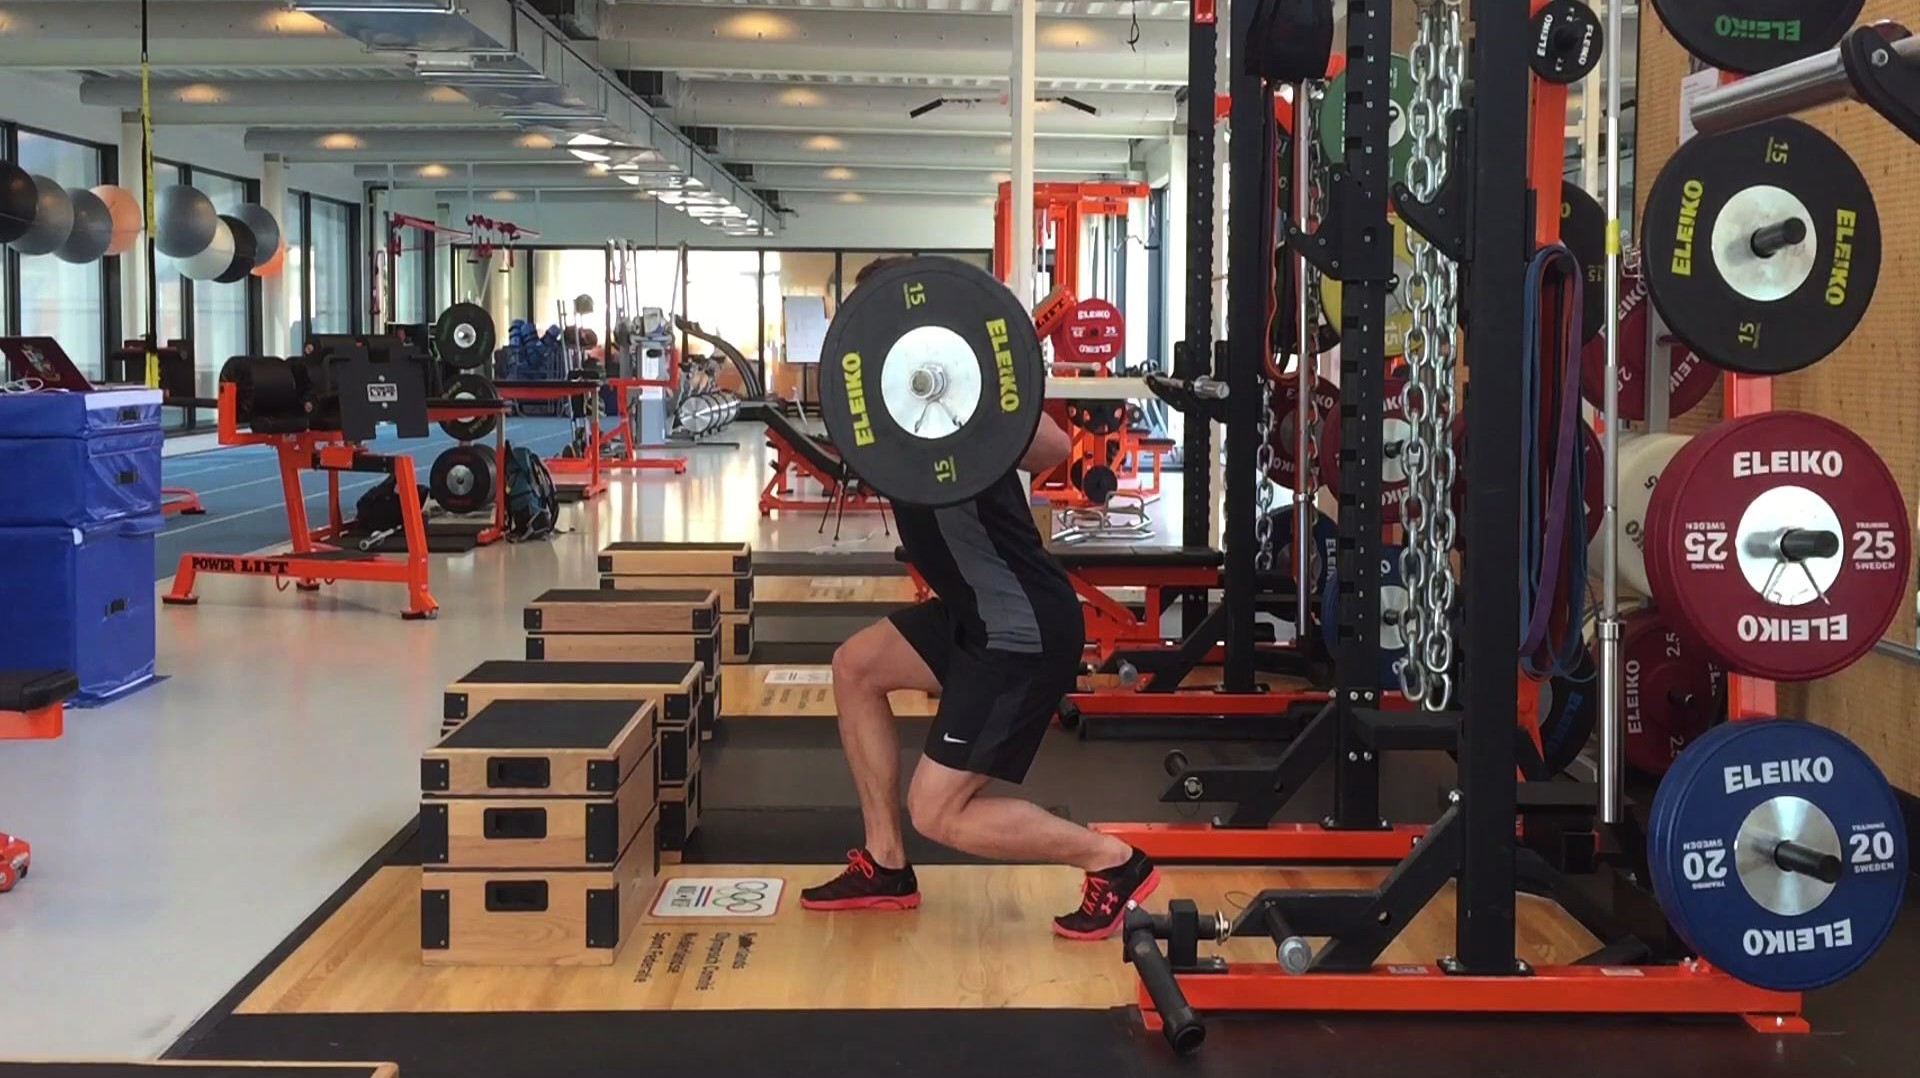 Split step squat with forward lean performed at Olympic training facility CTO Eindhoven using Eleiko Weights.